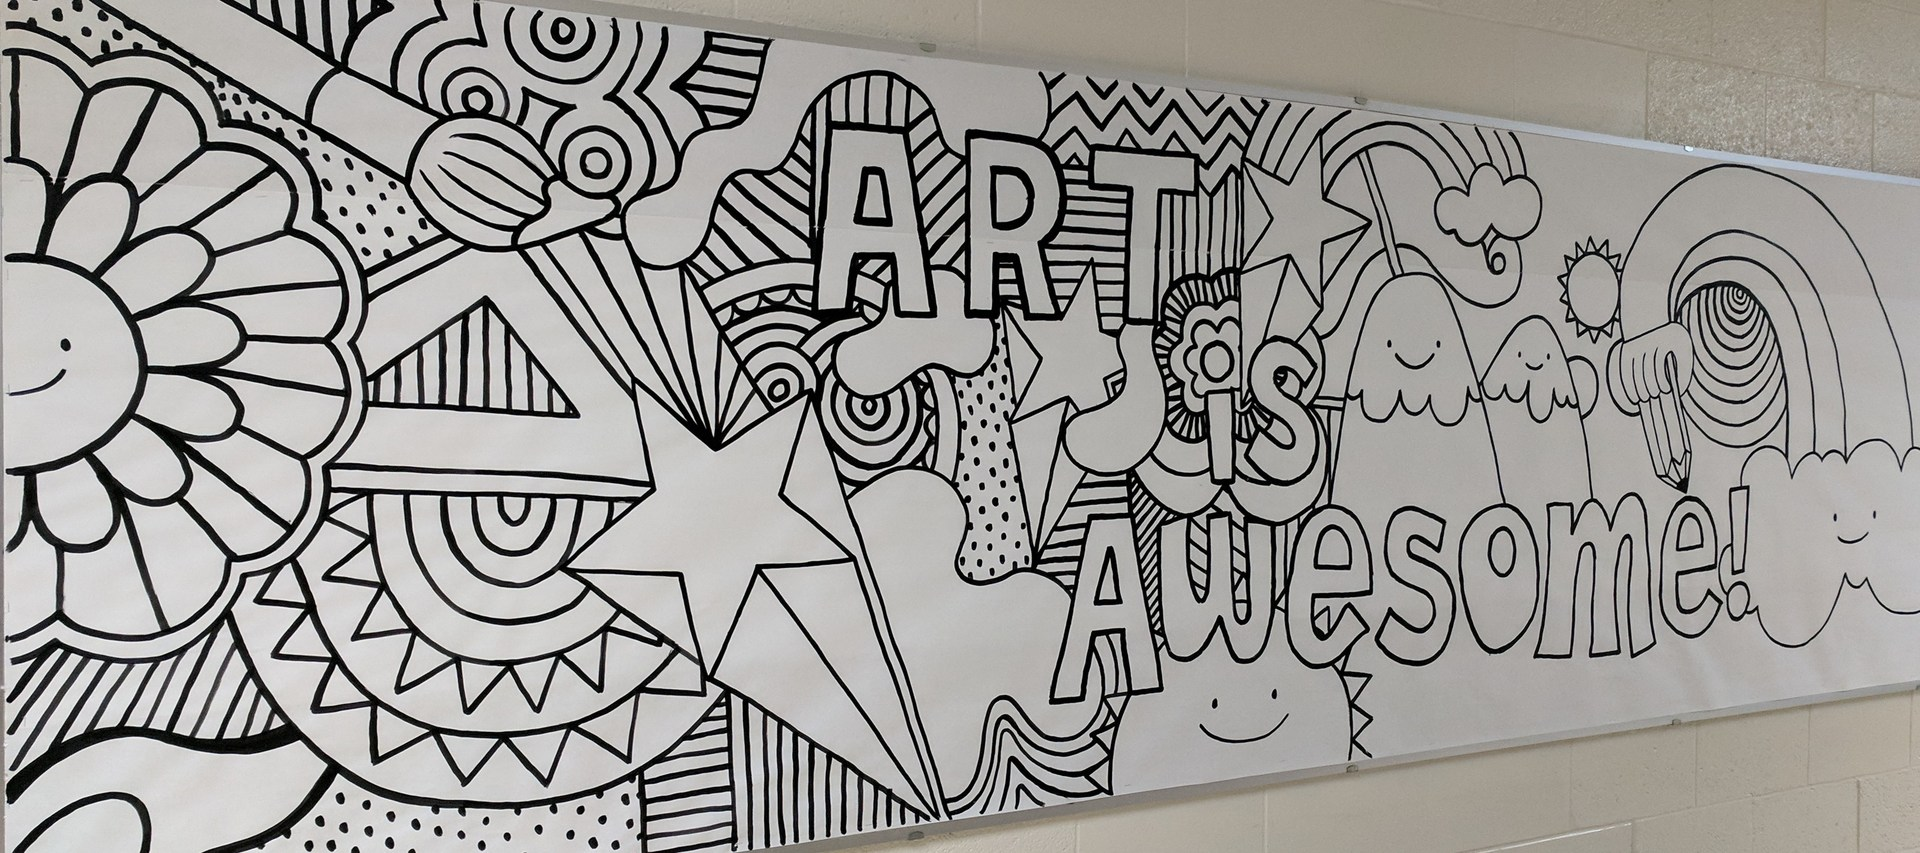 black and white hallway mural that says 'art is awesome' will be painted by art club students.